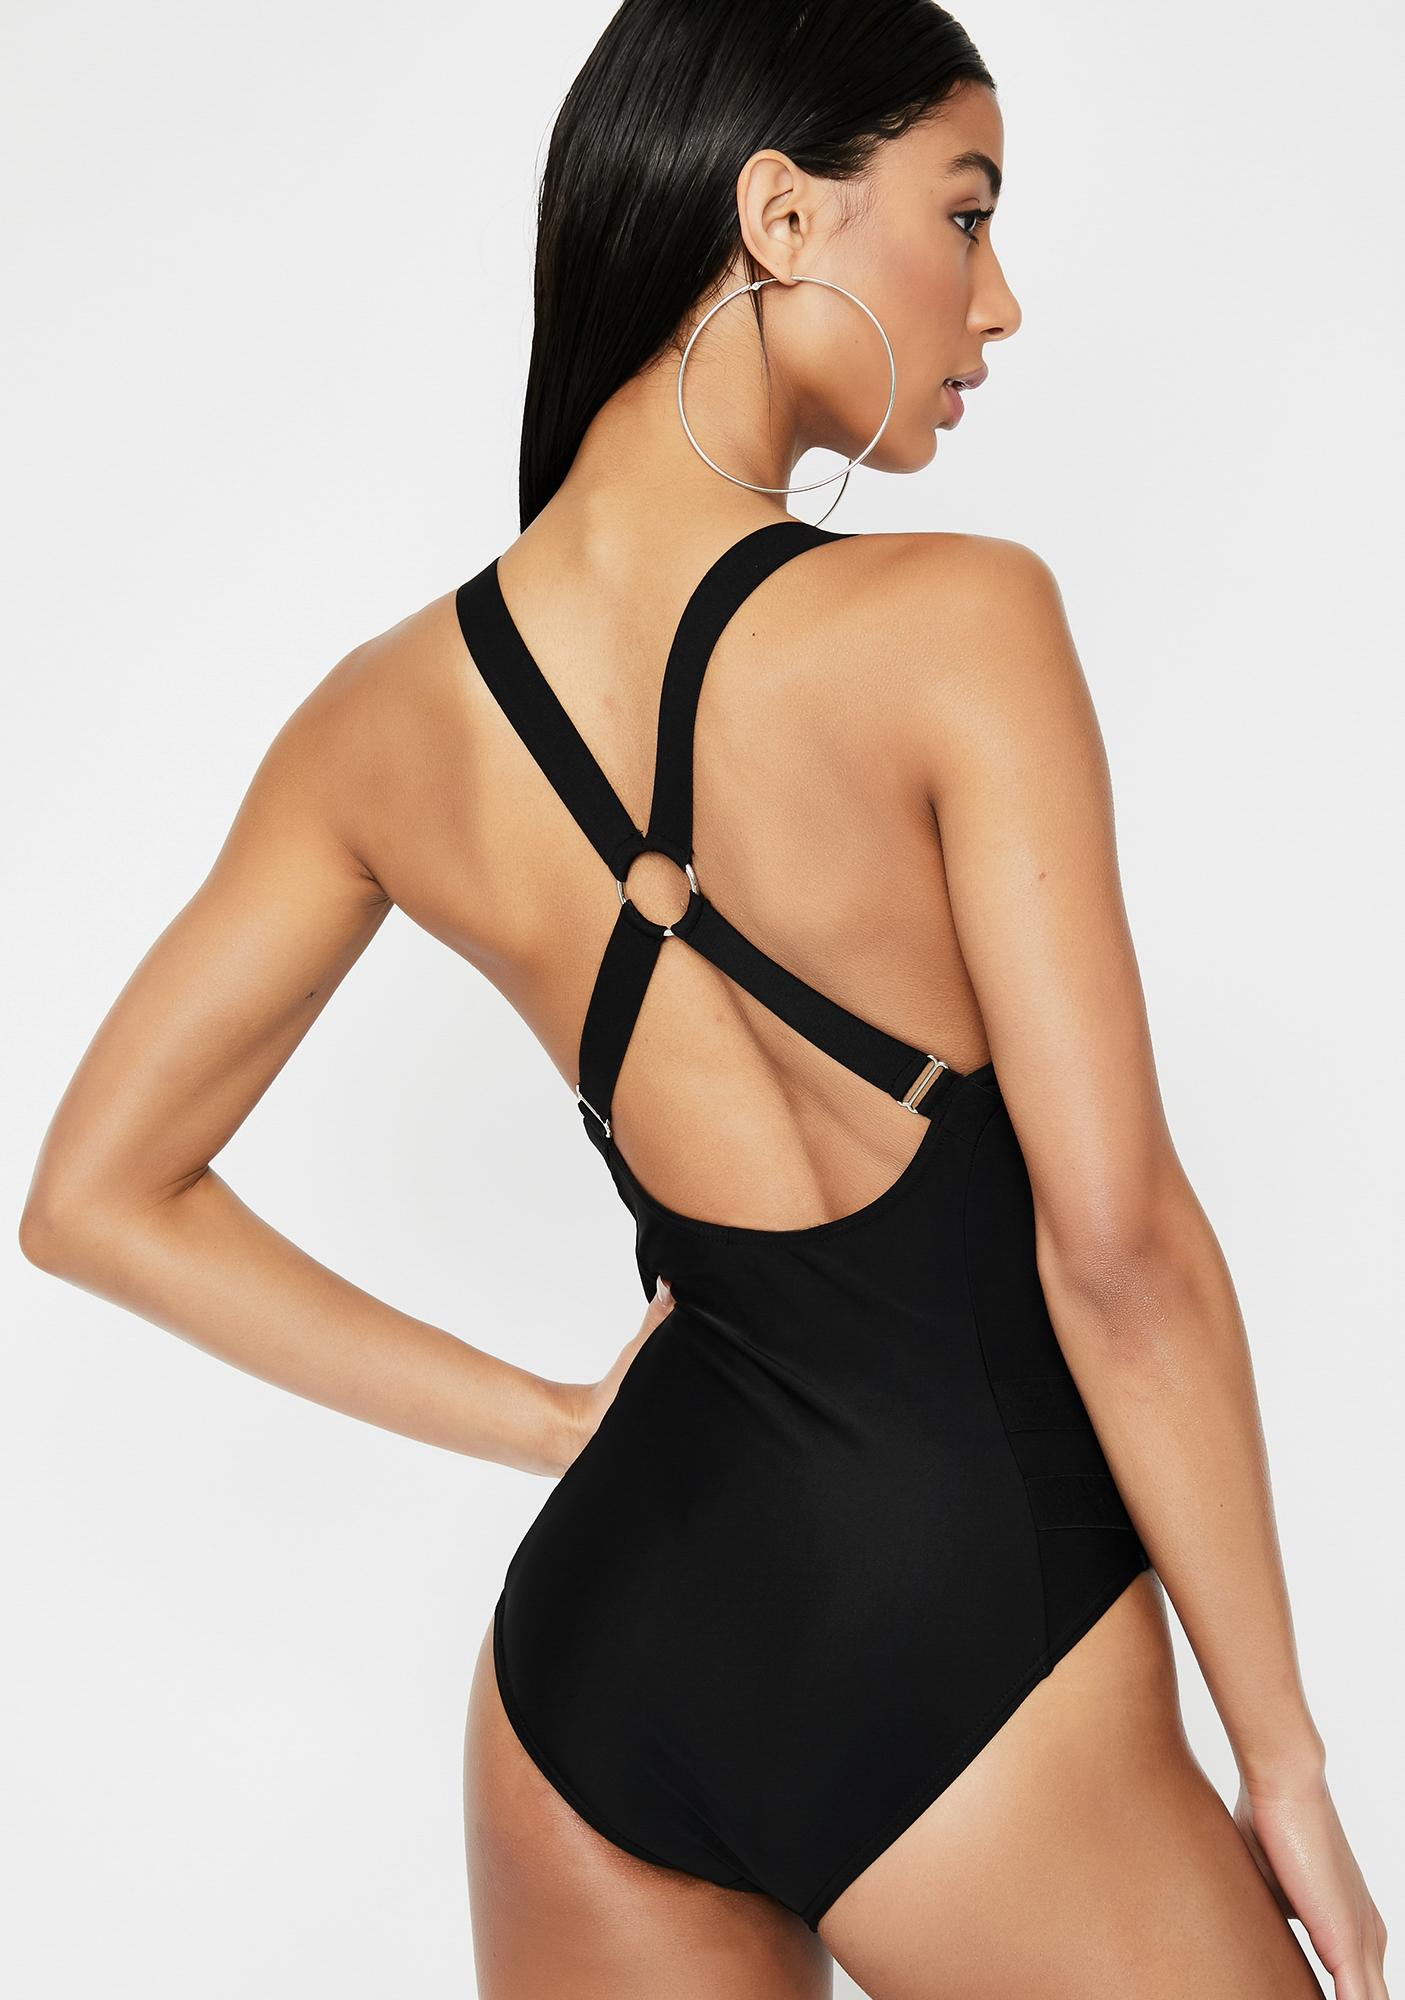 Poster Grl Promiscuous Grl One-Piece Swimsuit